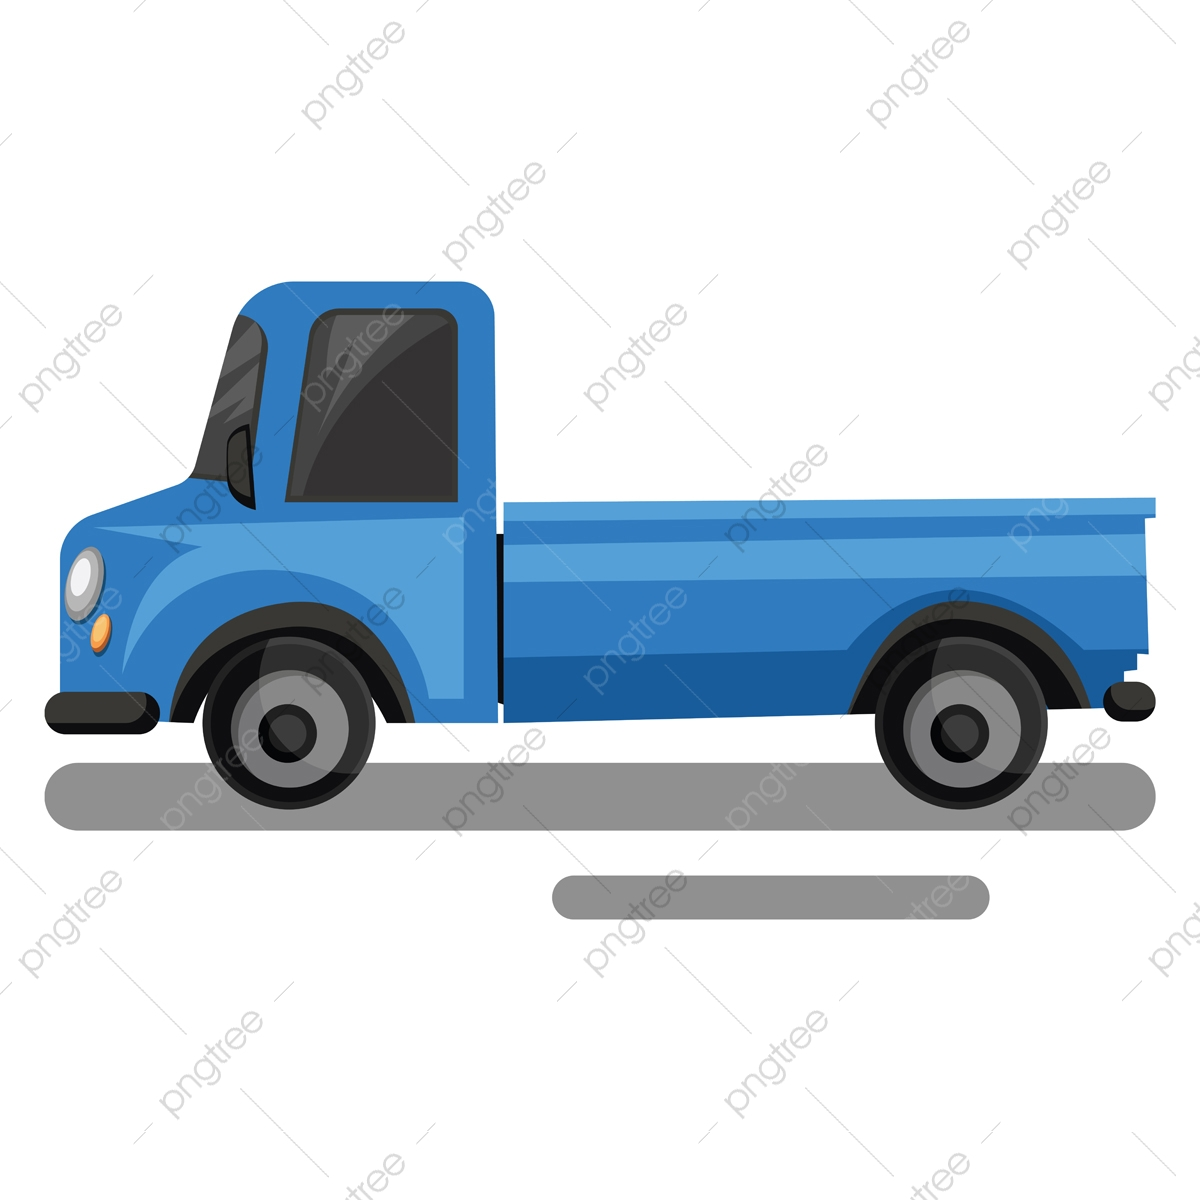 Blue Truck Cartoon Style Vector Illustration On White Background Logistic Trailer Lorry Png And Vector With Transparent Background For Free Download